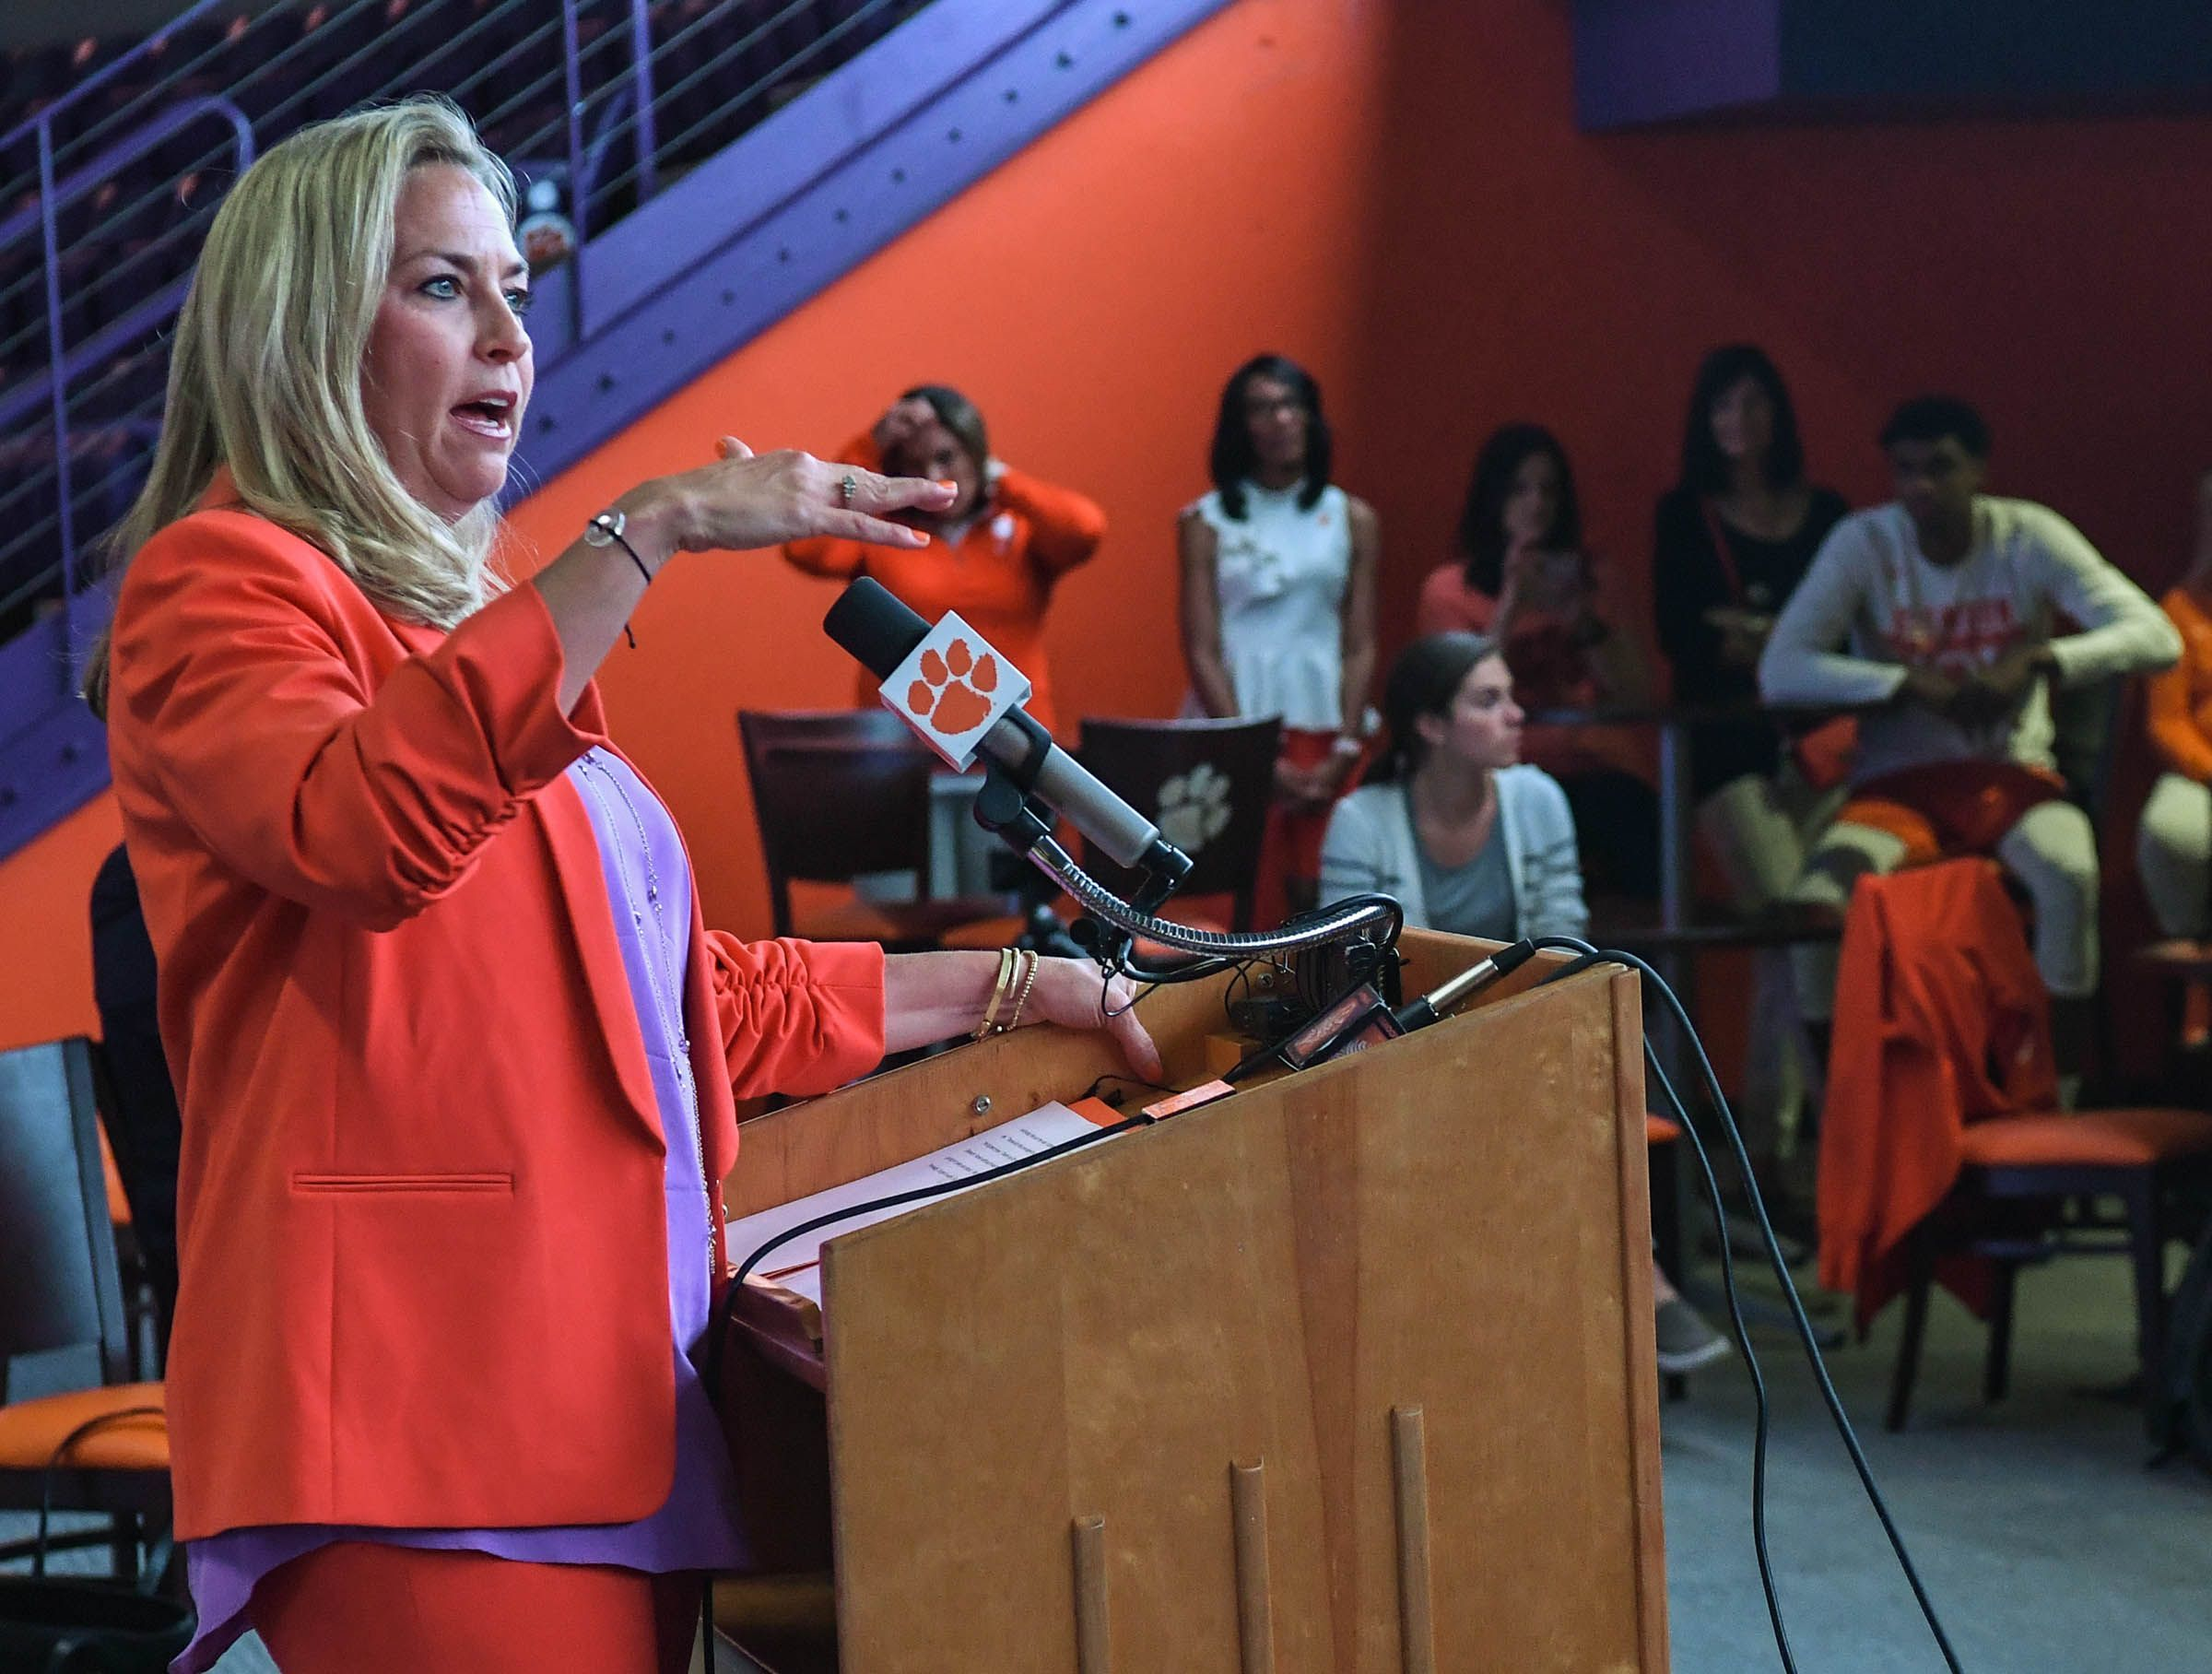 Women's basketball coach Amanda Butler, shown at her introductory news conference, is eager to begin the rebuilding project at Clemson.